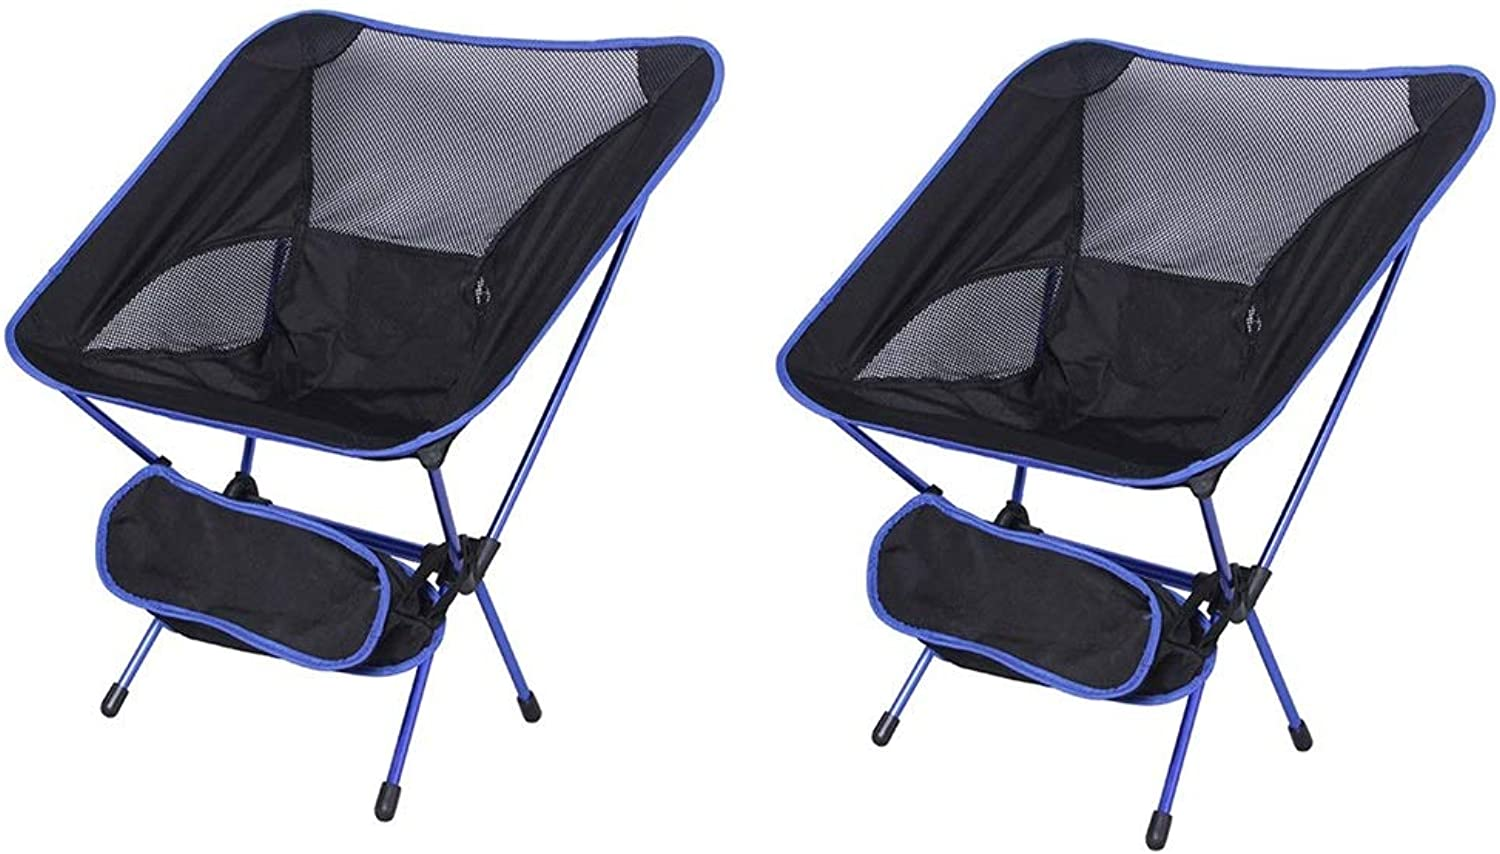 Ultralight Folding Camping Backpacking Chair Portable Compact and Heavy Duty Outdoor Camping BBQ Beach Travel Picnic Festival with 1 Storage Carry Bag (color   2 Pcs bluee)